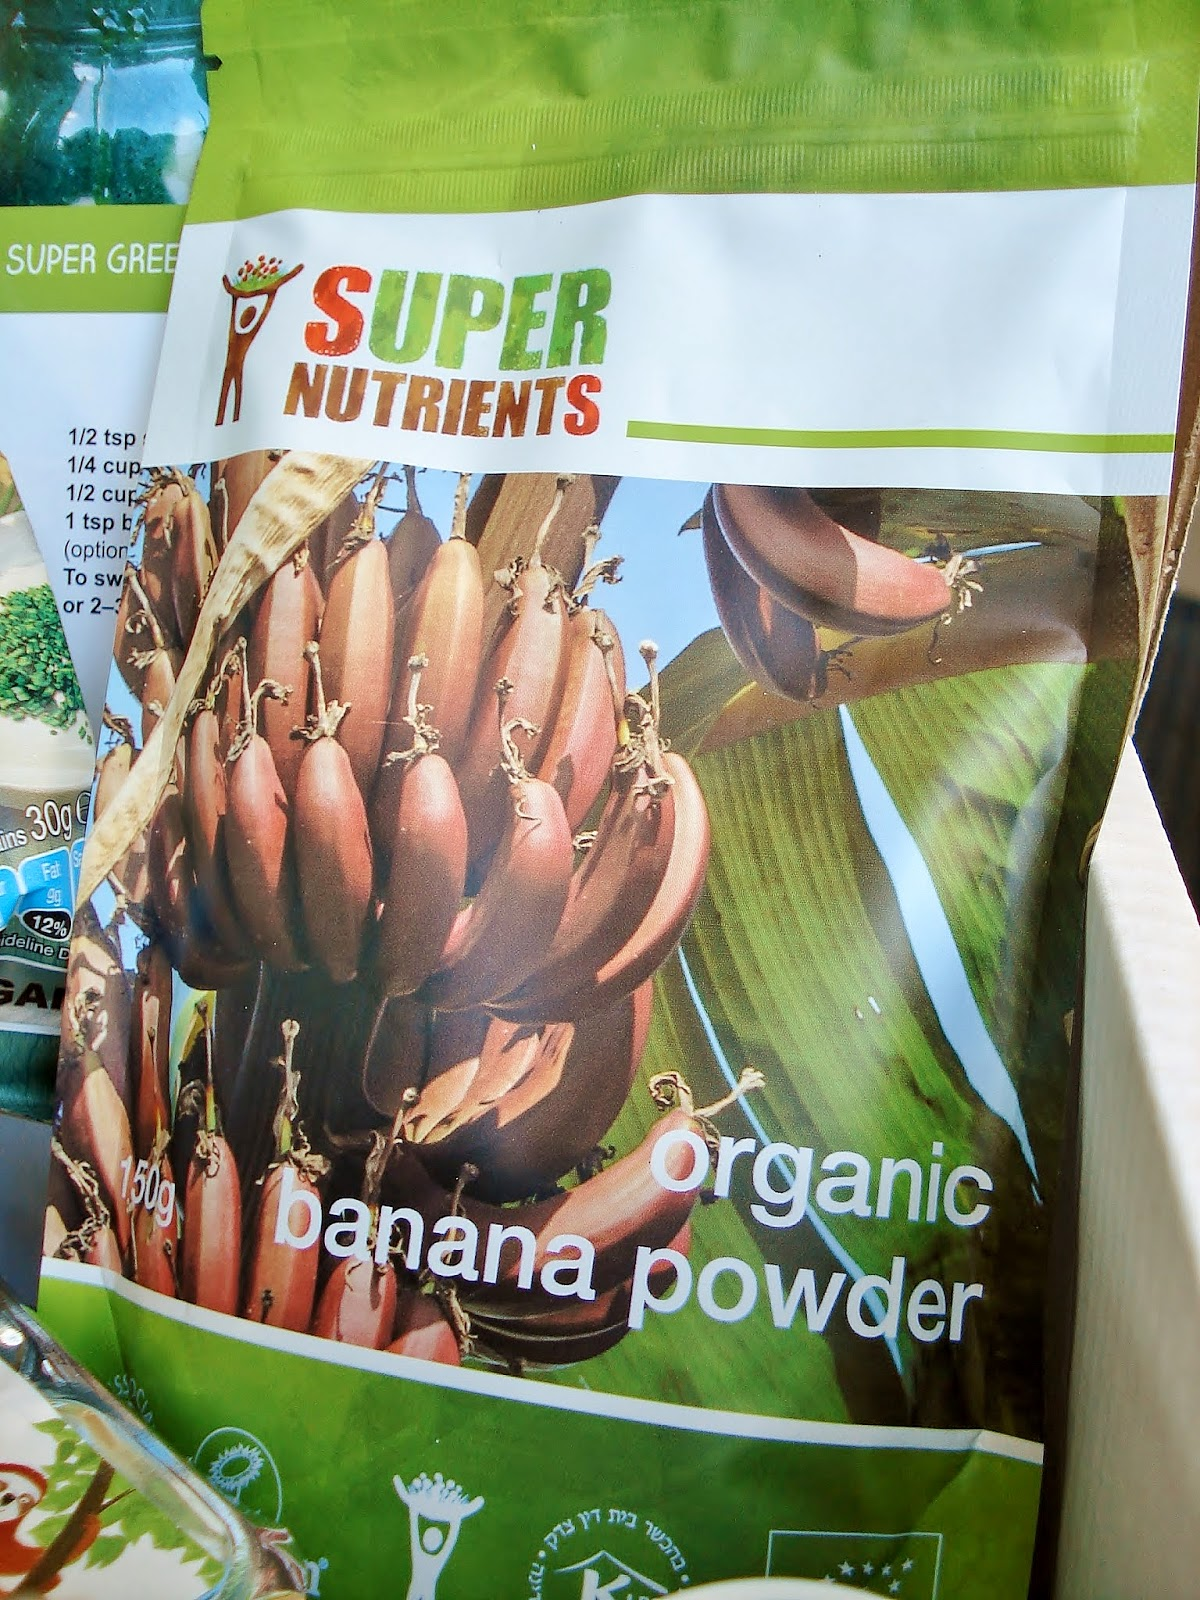 Packet of Super Nutrients banana powder